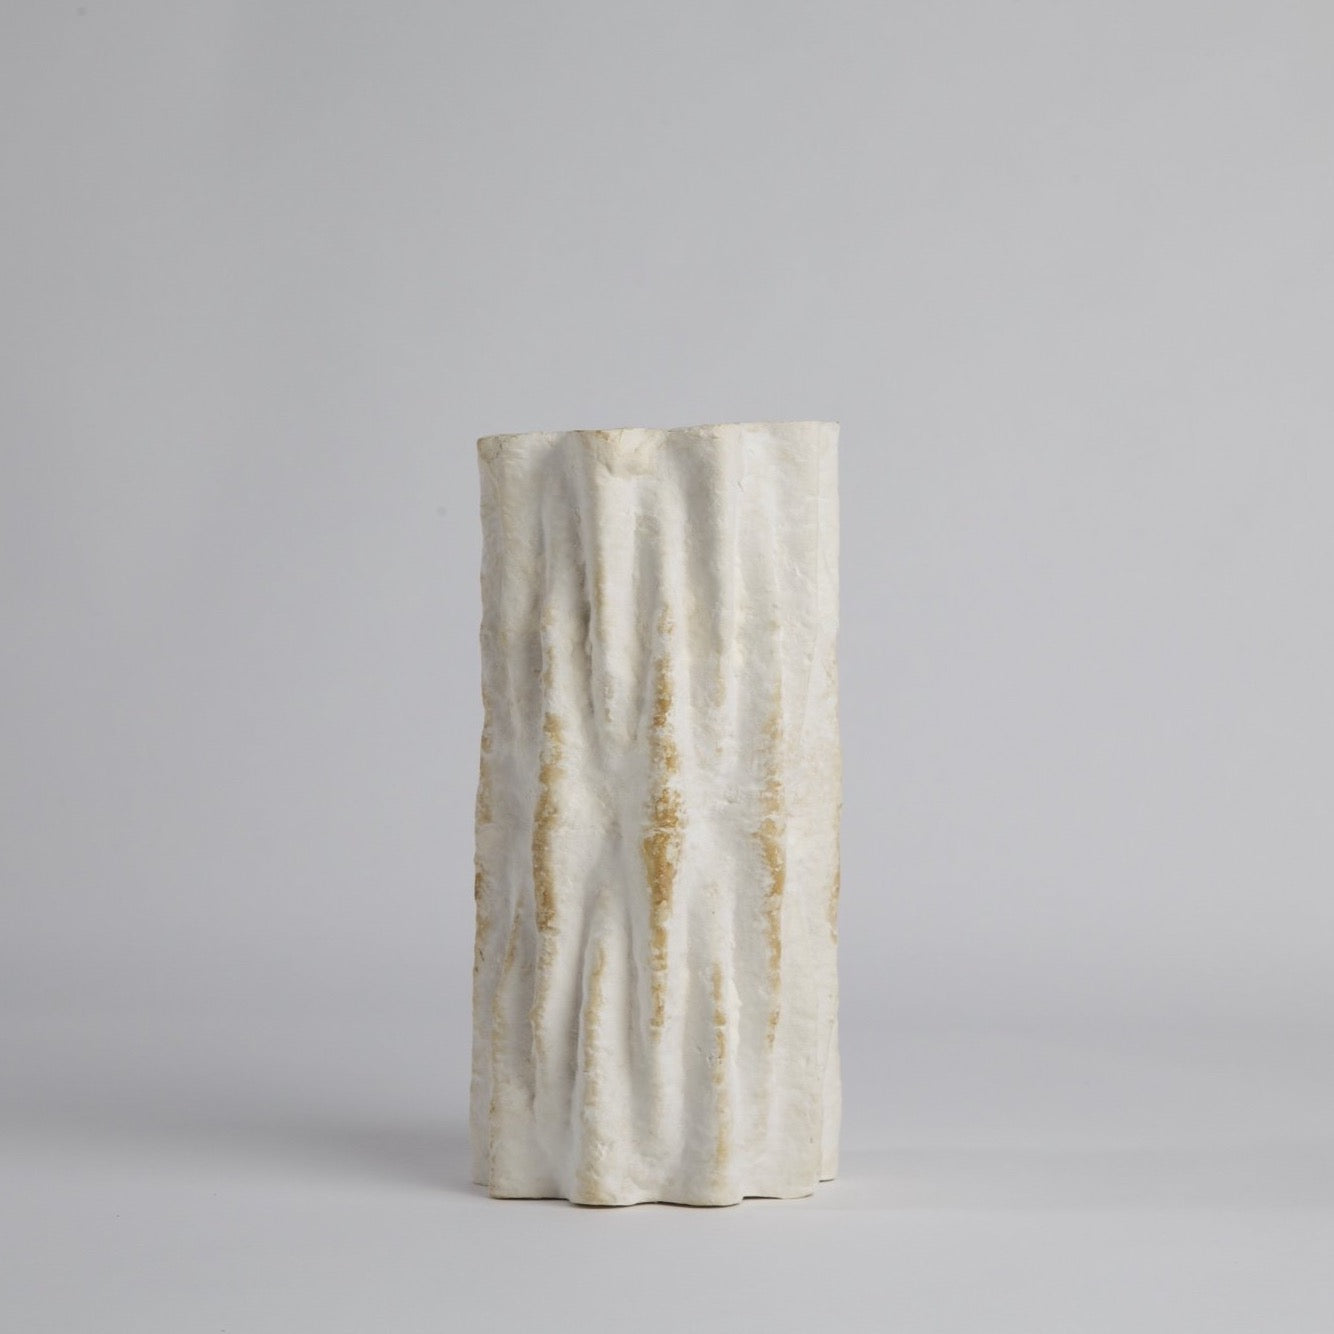 Myceliated Vase - THE HOME OF SUSTAINABLE THINGS